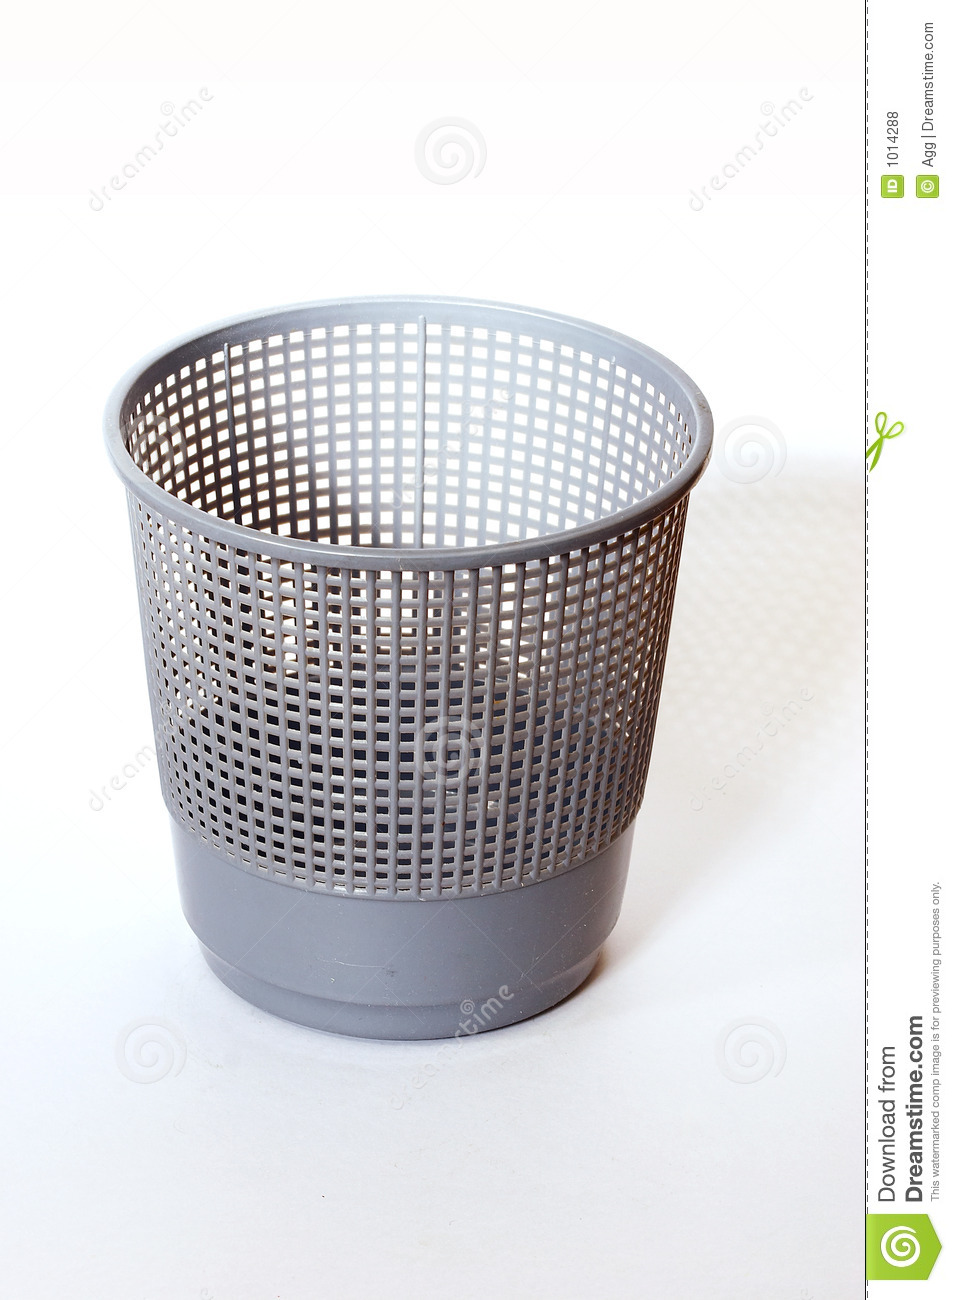 Dustbin Royalty Free Stock Photos - Image: 1014288